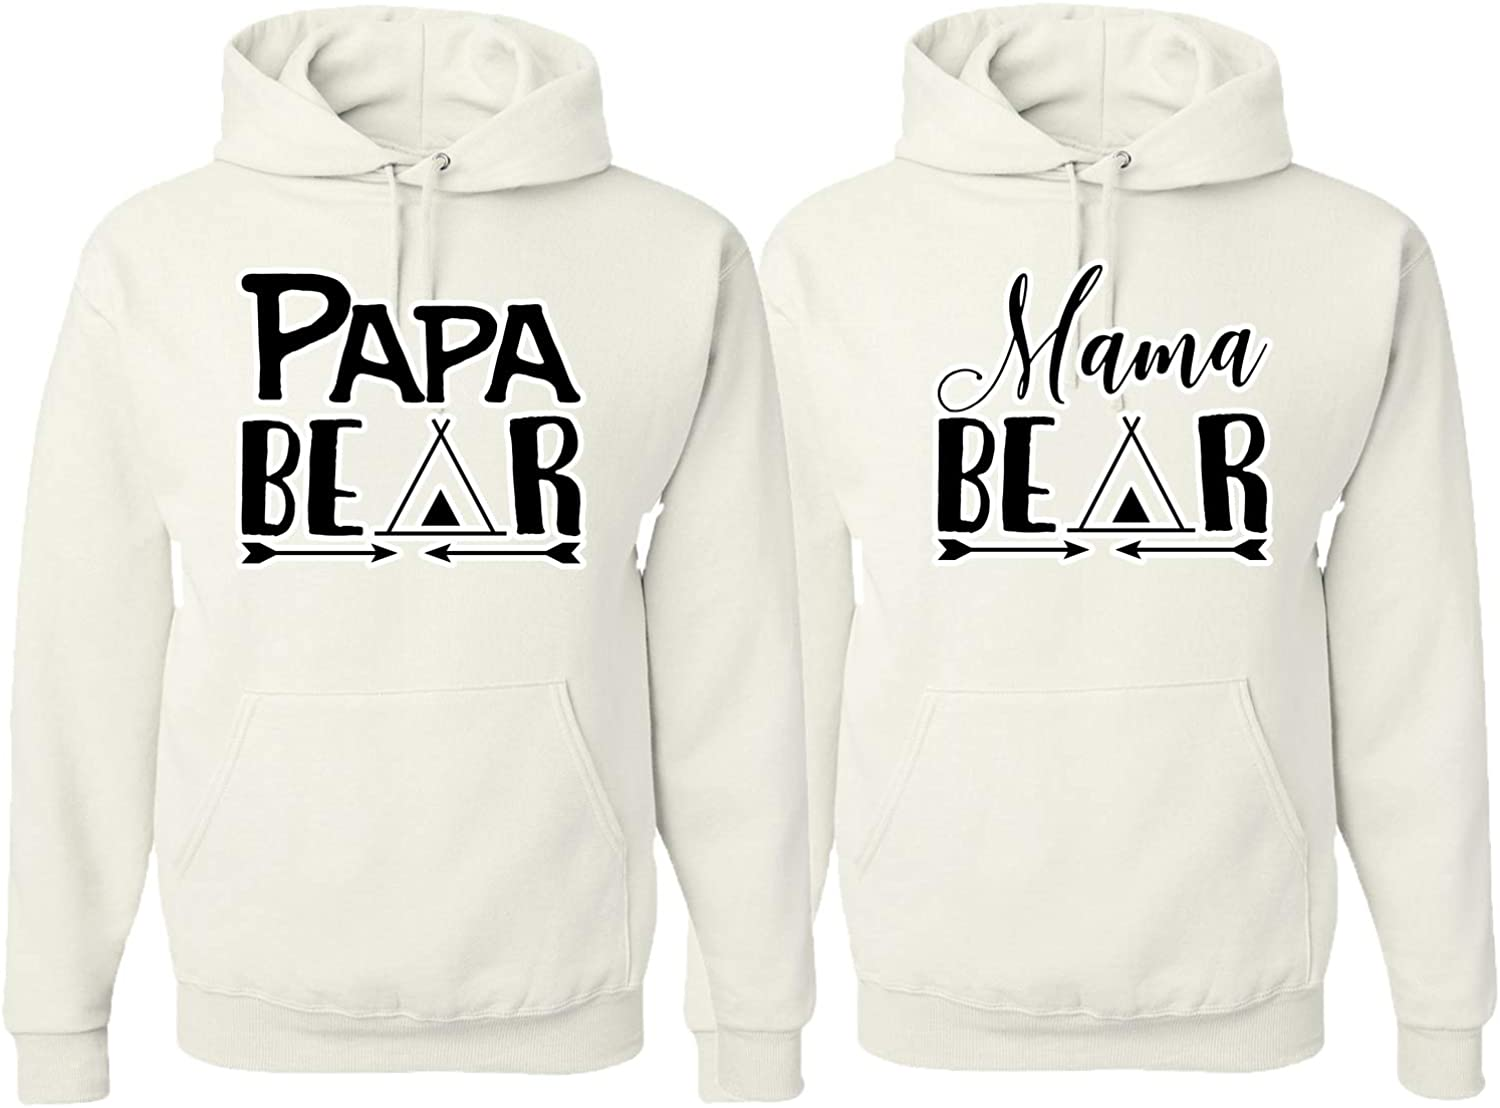 Papa Mama Bear 授与 Cute Husband Wife Hers and Gift Matching His Coup 年中無休